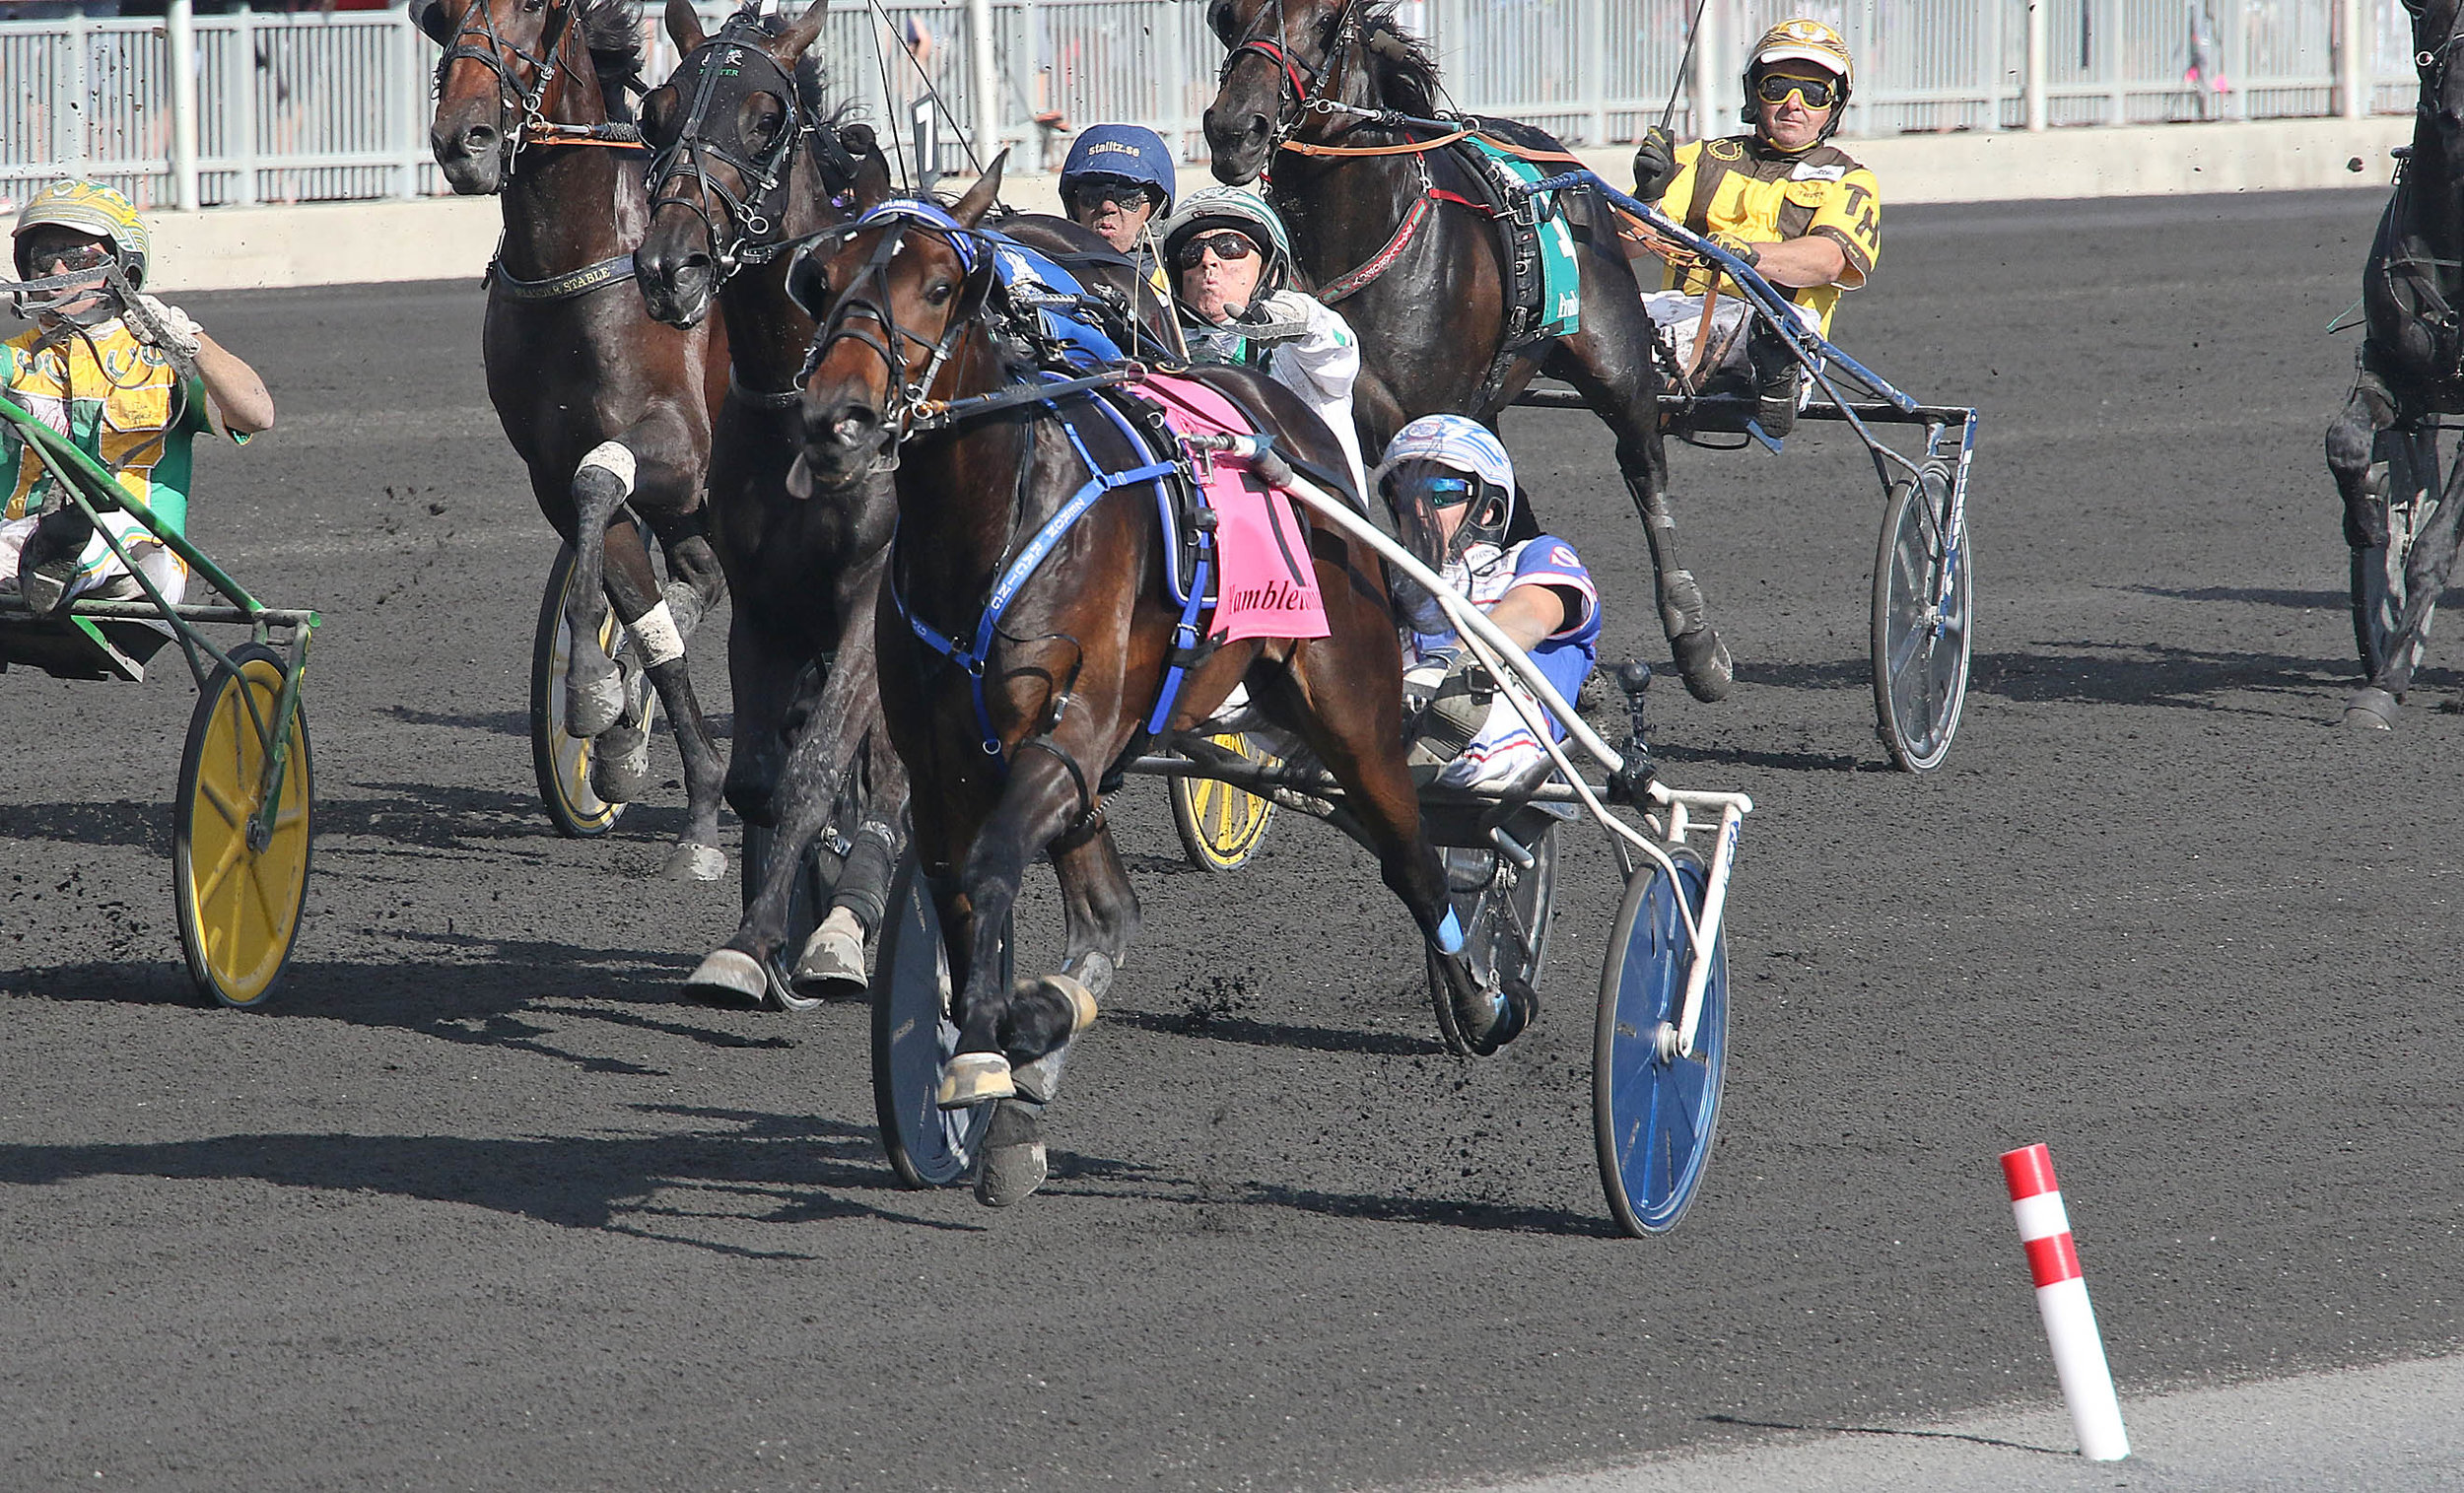 PHOTO: Atlanta and driver Scott Zeron take the 93rd Hambletonian Saturday at the Meadowlands. (Credit: Lisa Photo)